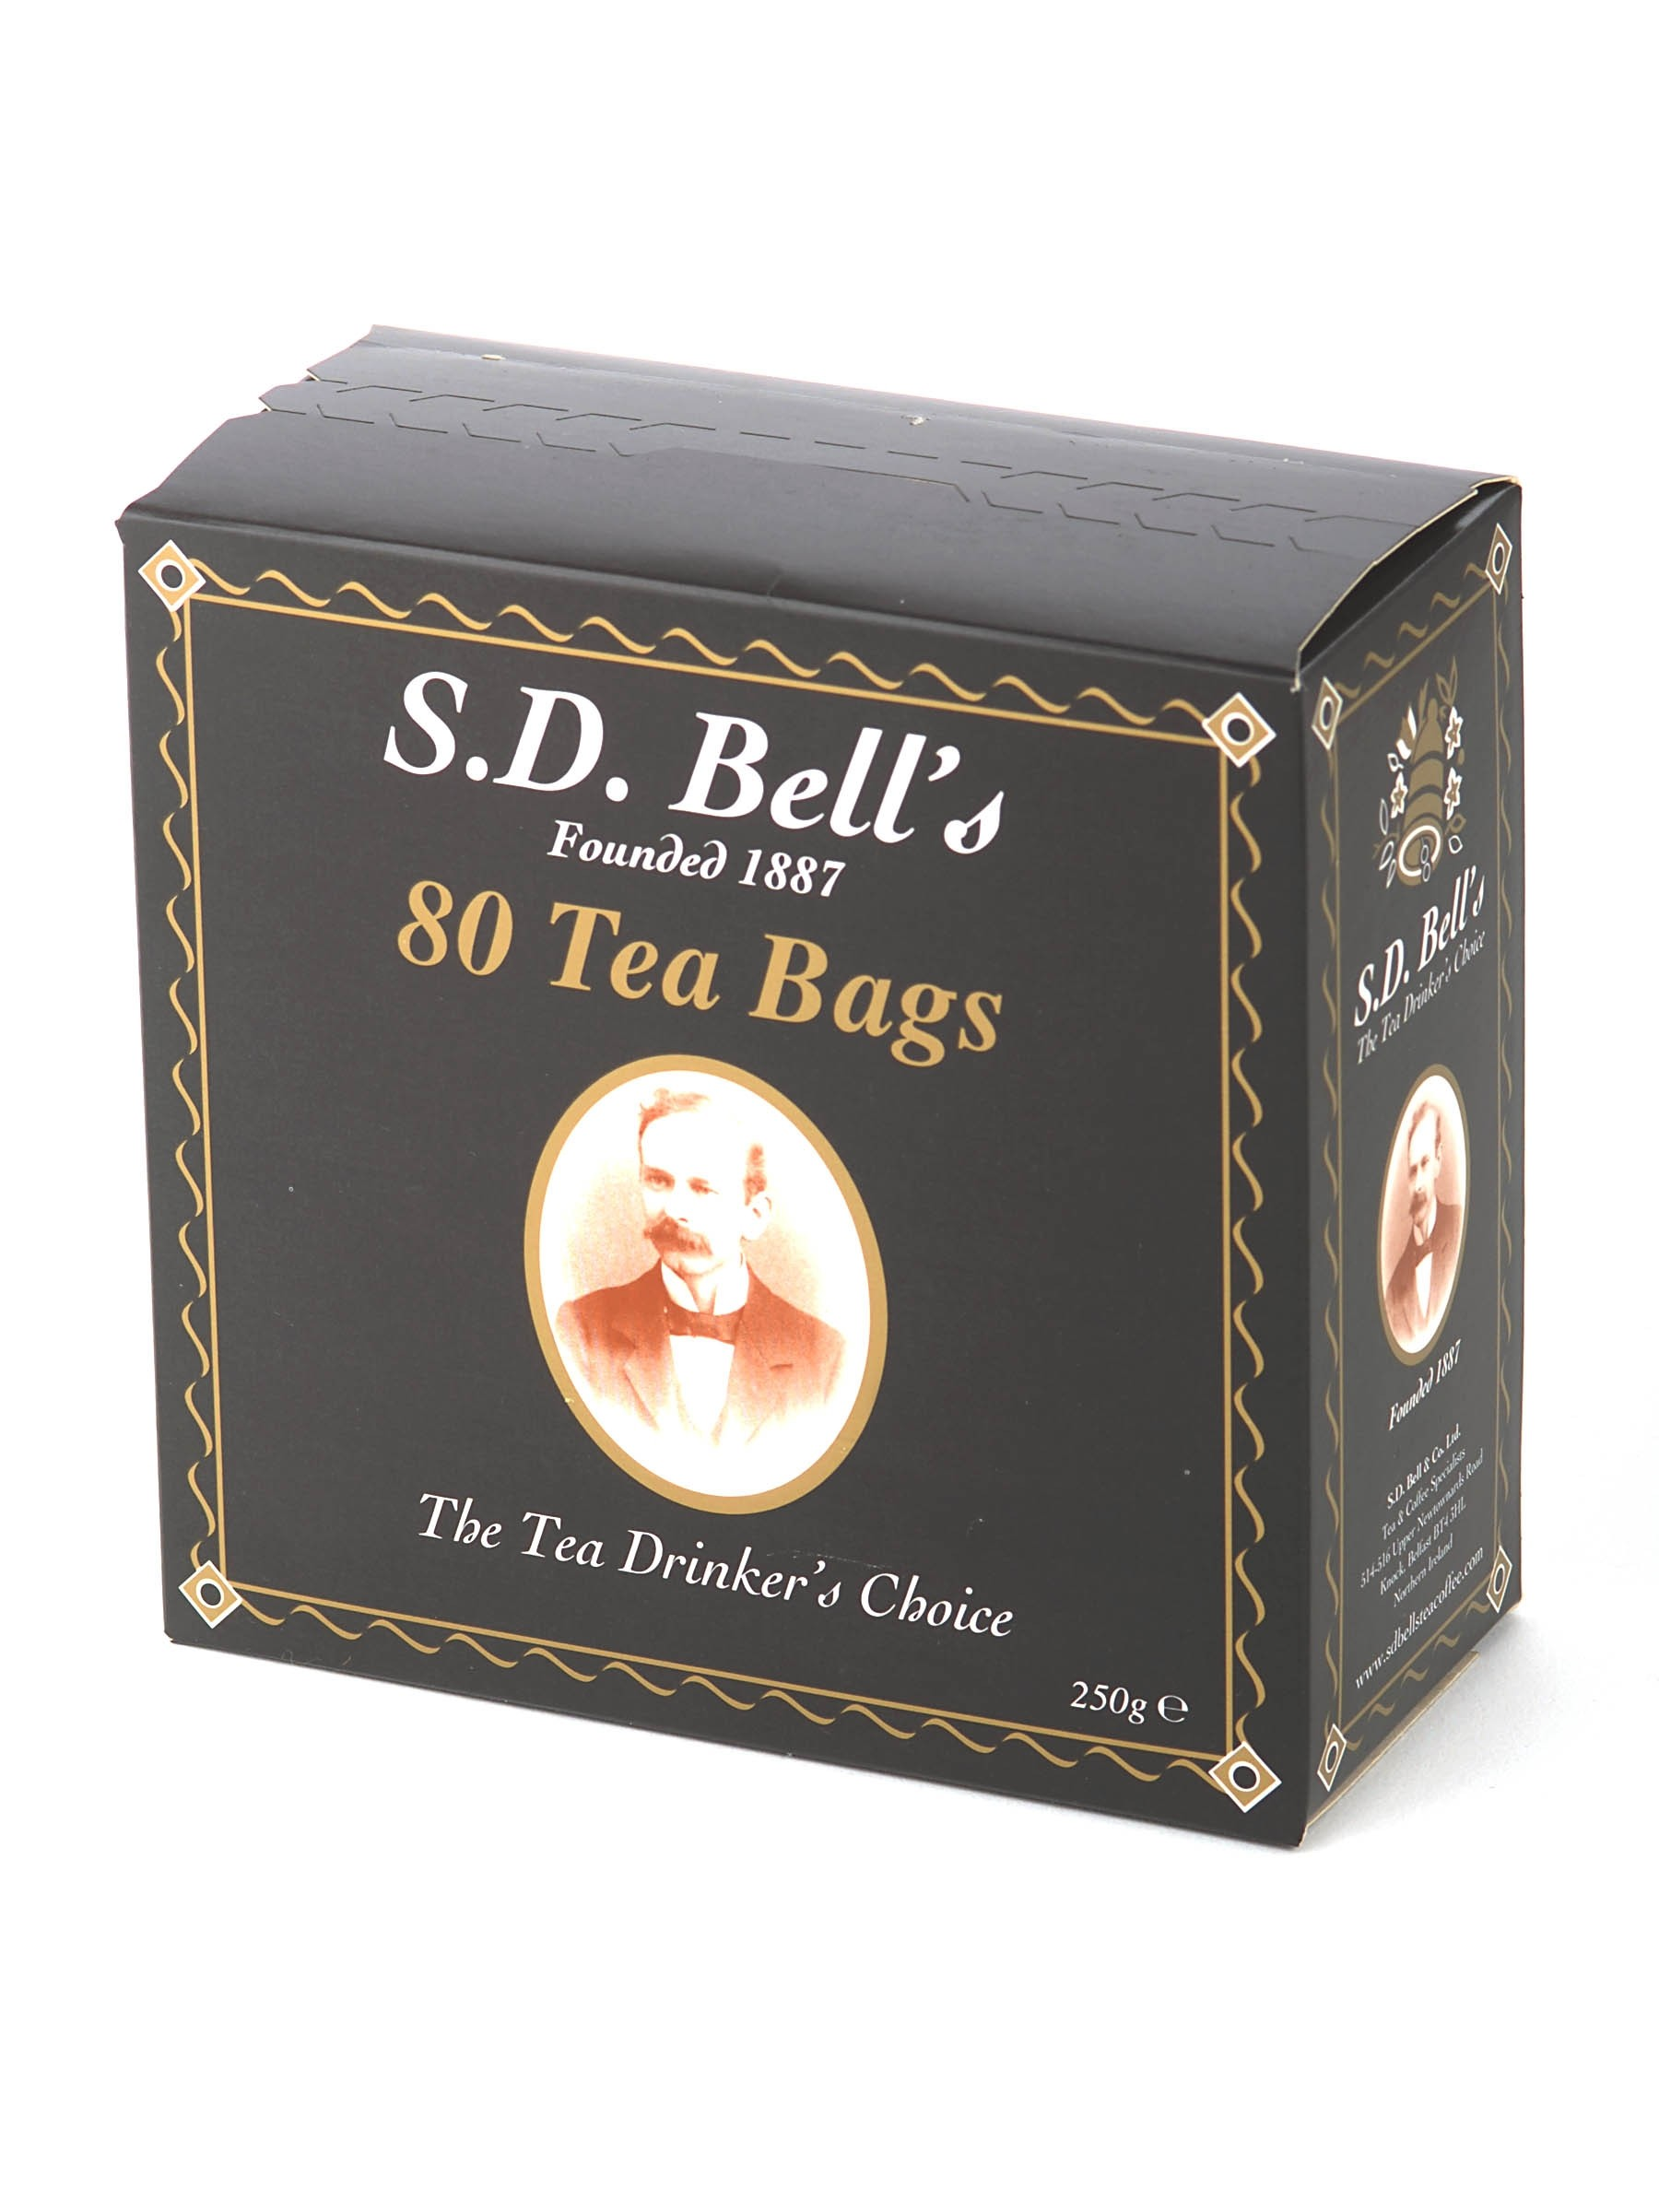 SD Bells Belfast Tea Carton - Teabags